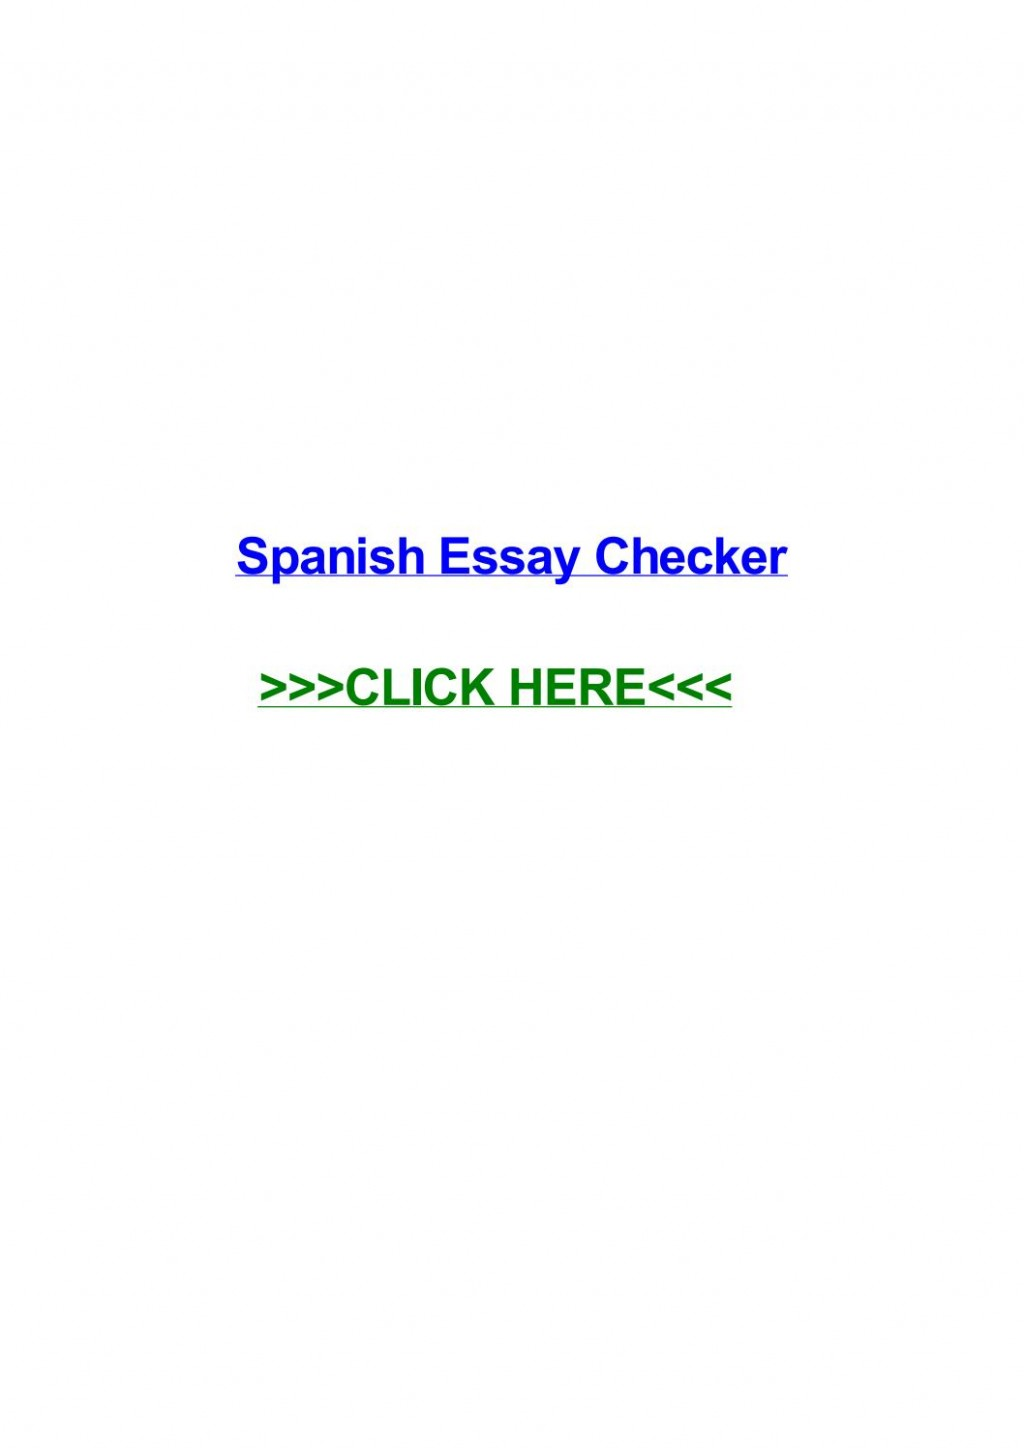 003 Essay Example Page 1 Spanish Remarkable Checker Large